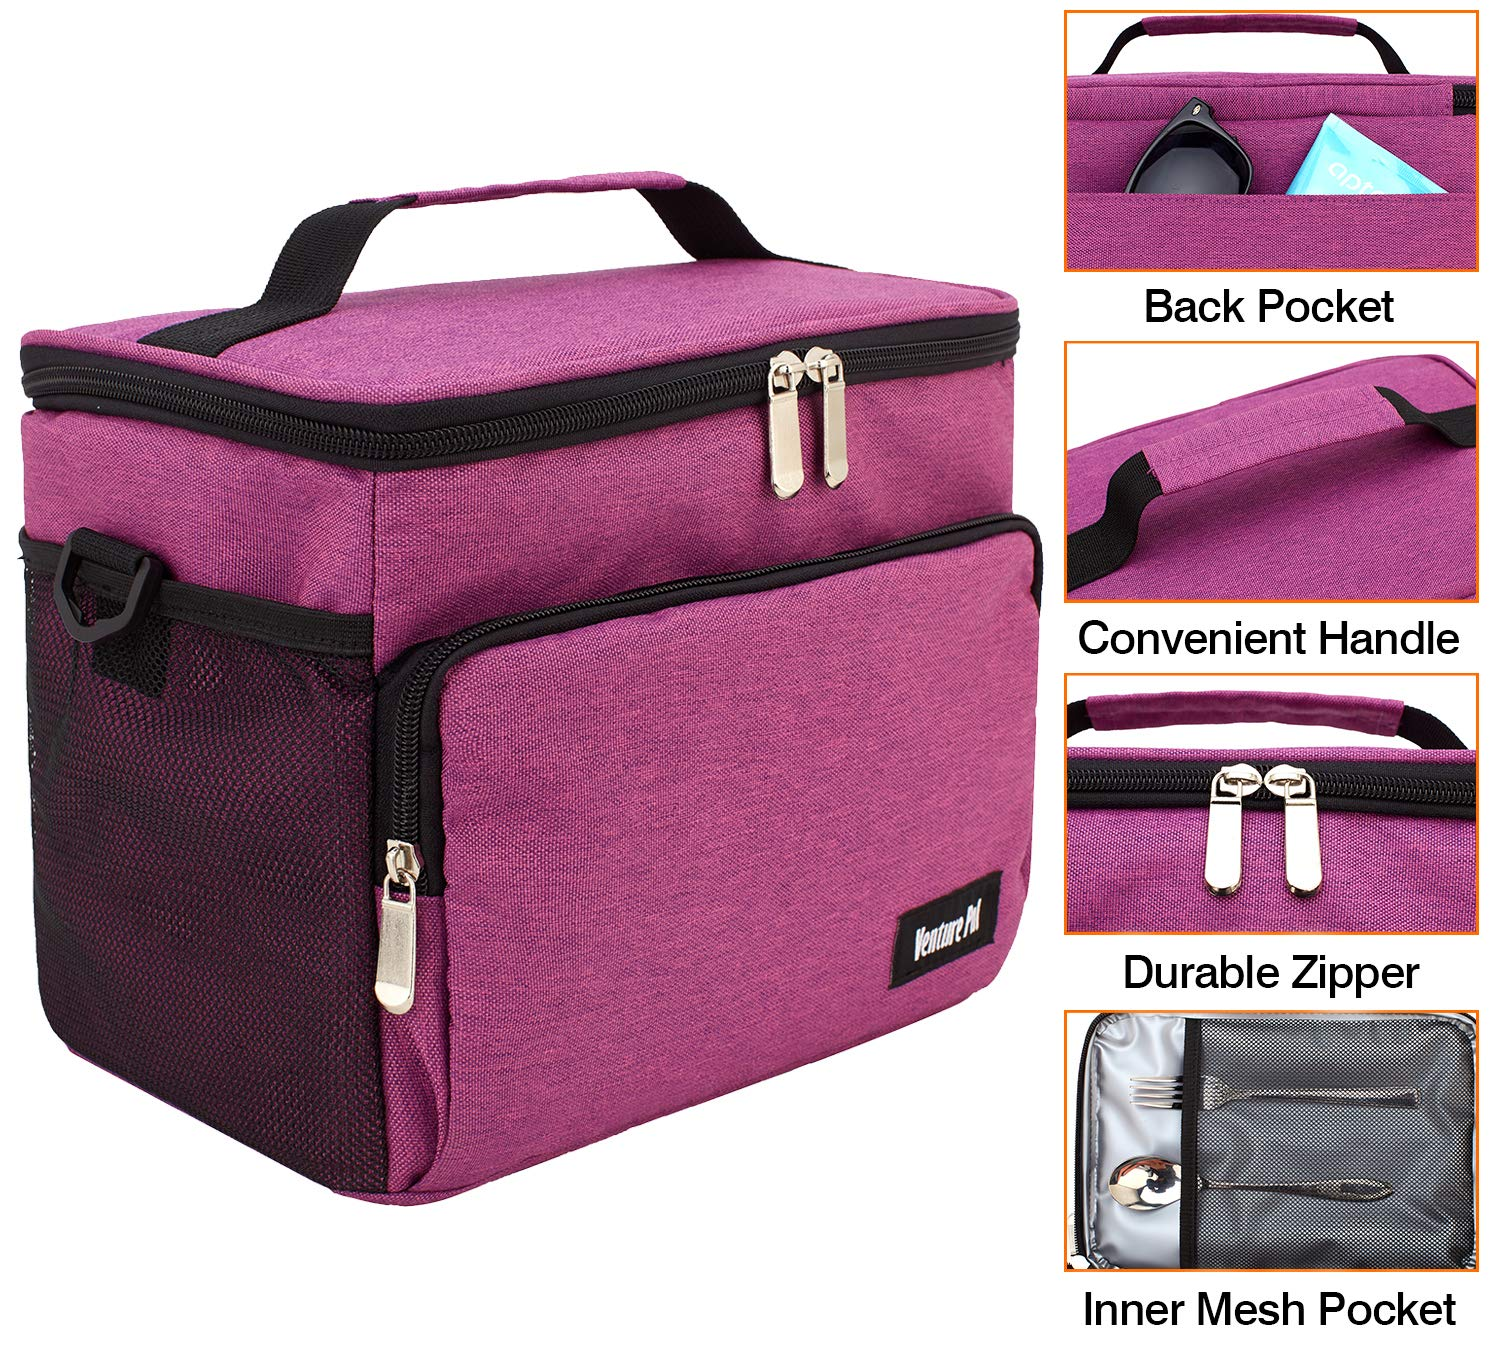 Reusable Insulated Cooler Lunch Bag - Office Work School Picnic Hiking Beach Lunch Box Organizer wit